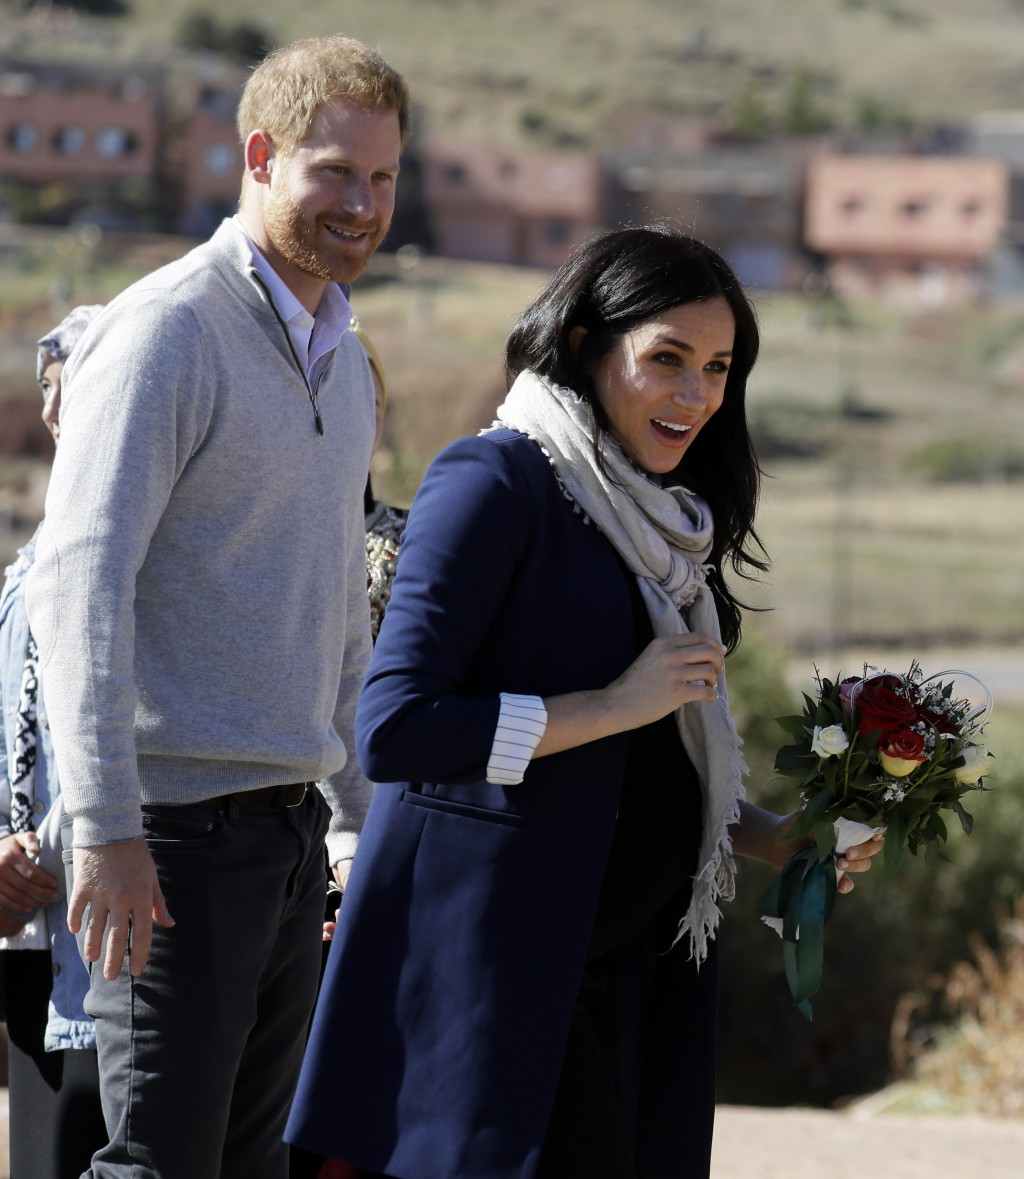 Britain's Prince Harry and Meghan, Duchess of Sussex arrive for a visit to an 'Education for All' boarding house in Asni Town in Morocco, Sunday, Feb.